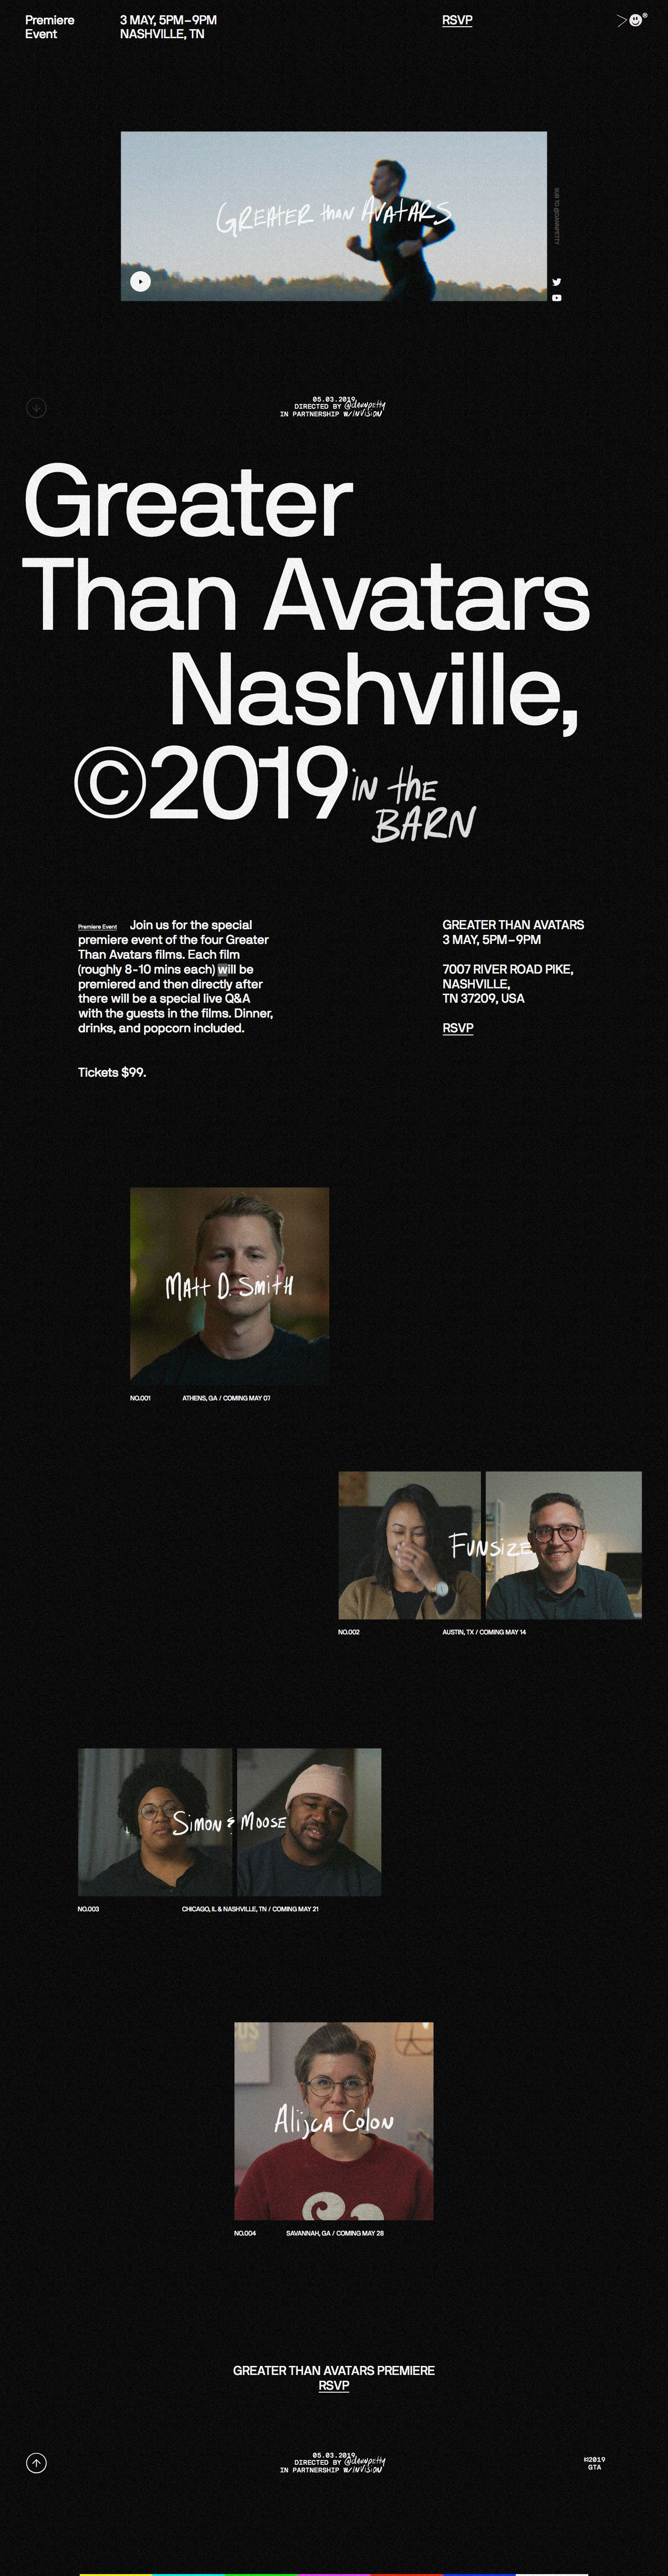 Greater Than Avatars Is A Series Of 4 Short Films That Shed The Light On The People Behind The Avatars Web Design Landing Page Design Best Landing Page Design